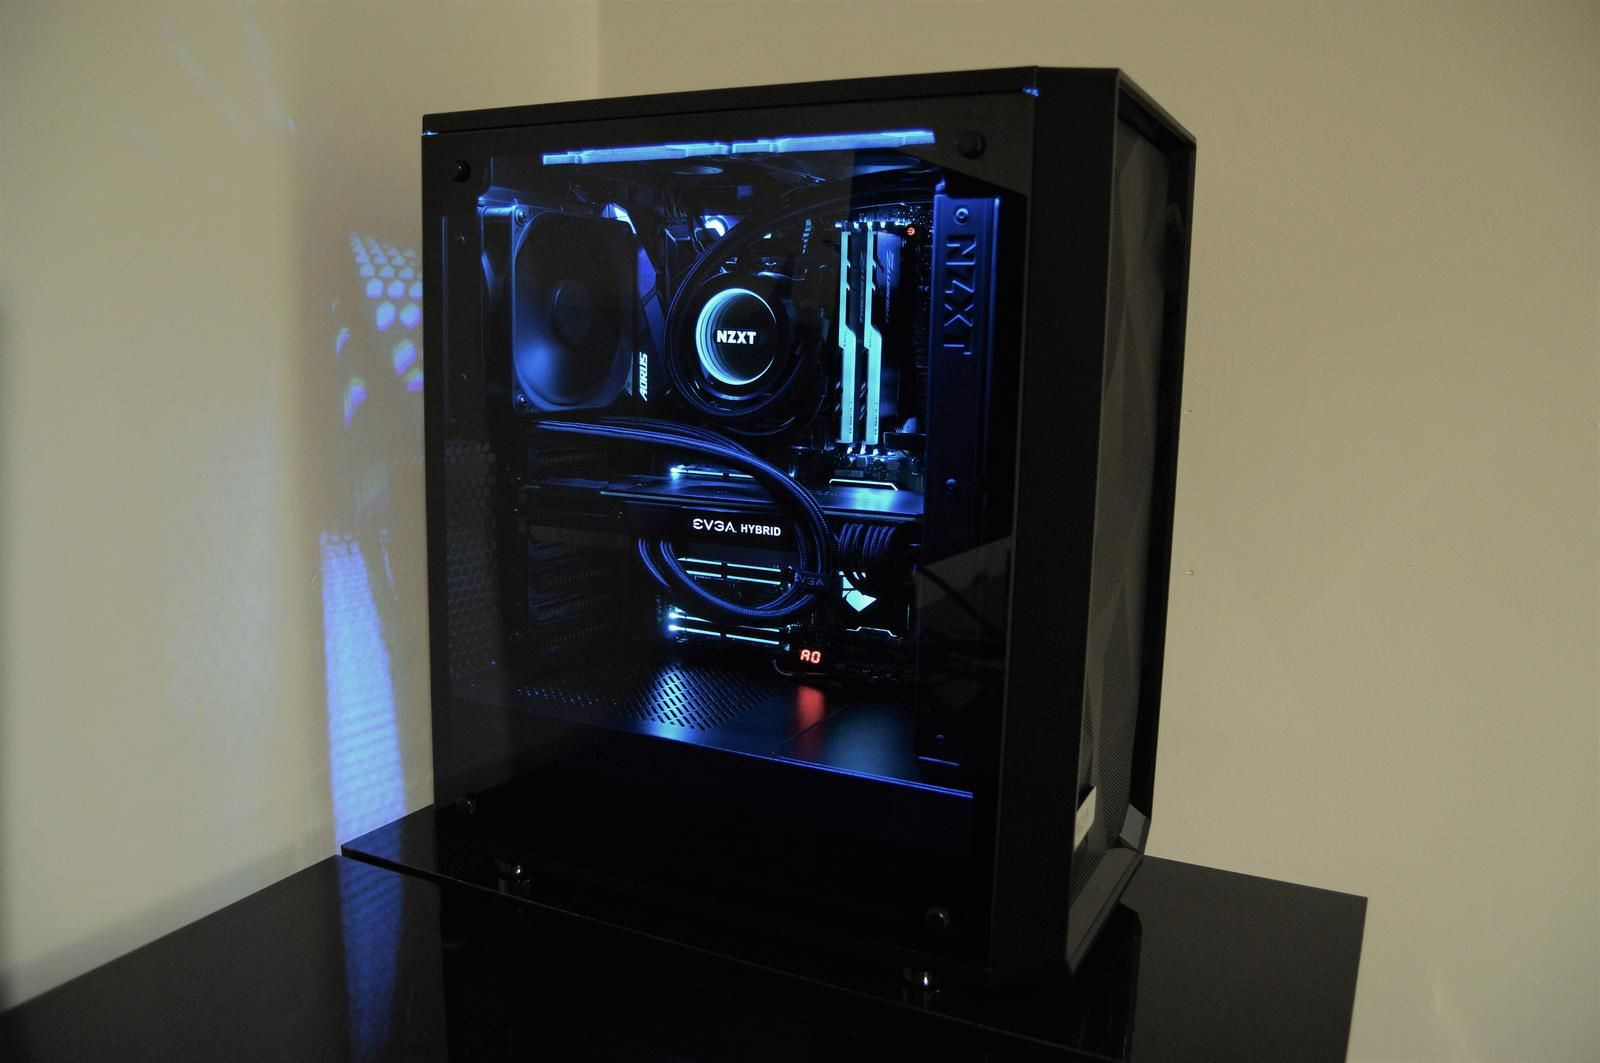 Jay Dubs S Completed Build Core I7 8700k 3 7 Ghz 6 Core Geforce Gtx 1080 Ti 11 Gb Sc2 Hybrid Gaming Meshify C Dark Tg Atx Computer Setup Custom Pc Pc Setup,Types Of Quasi Experimental Research Design